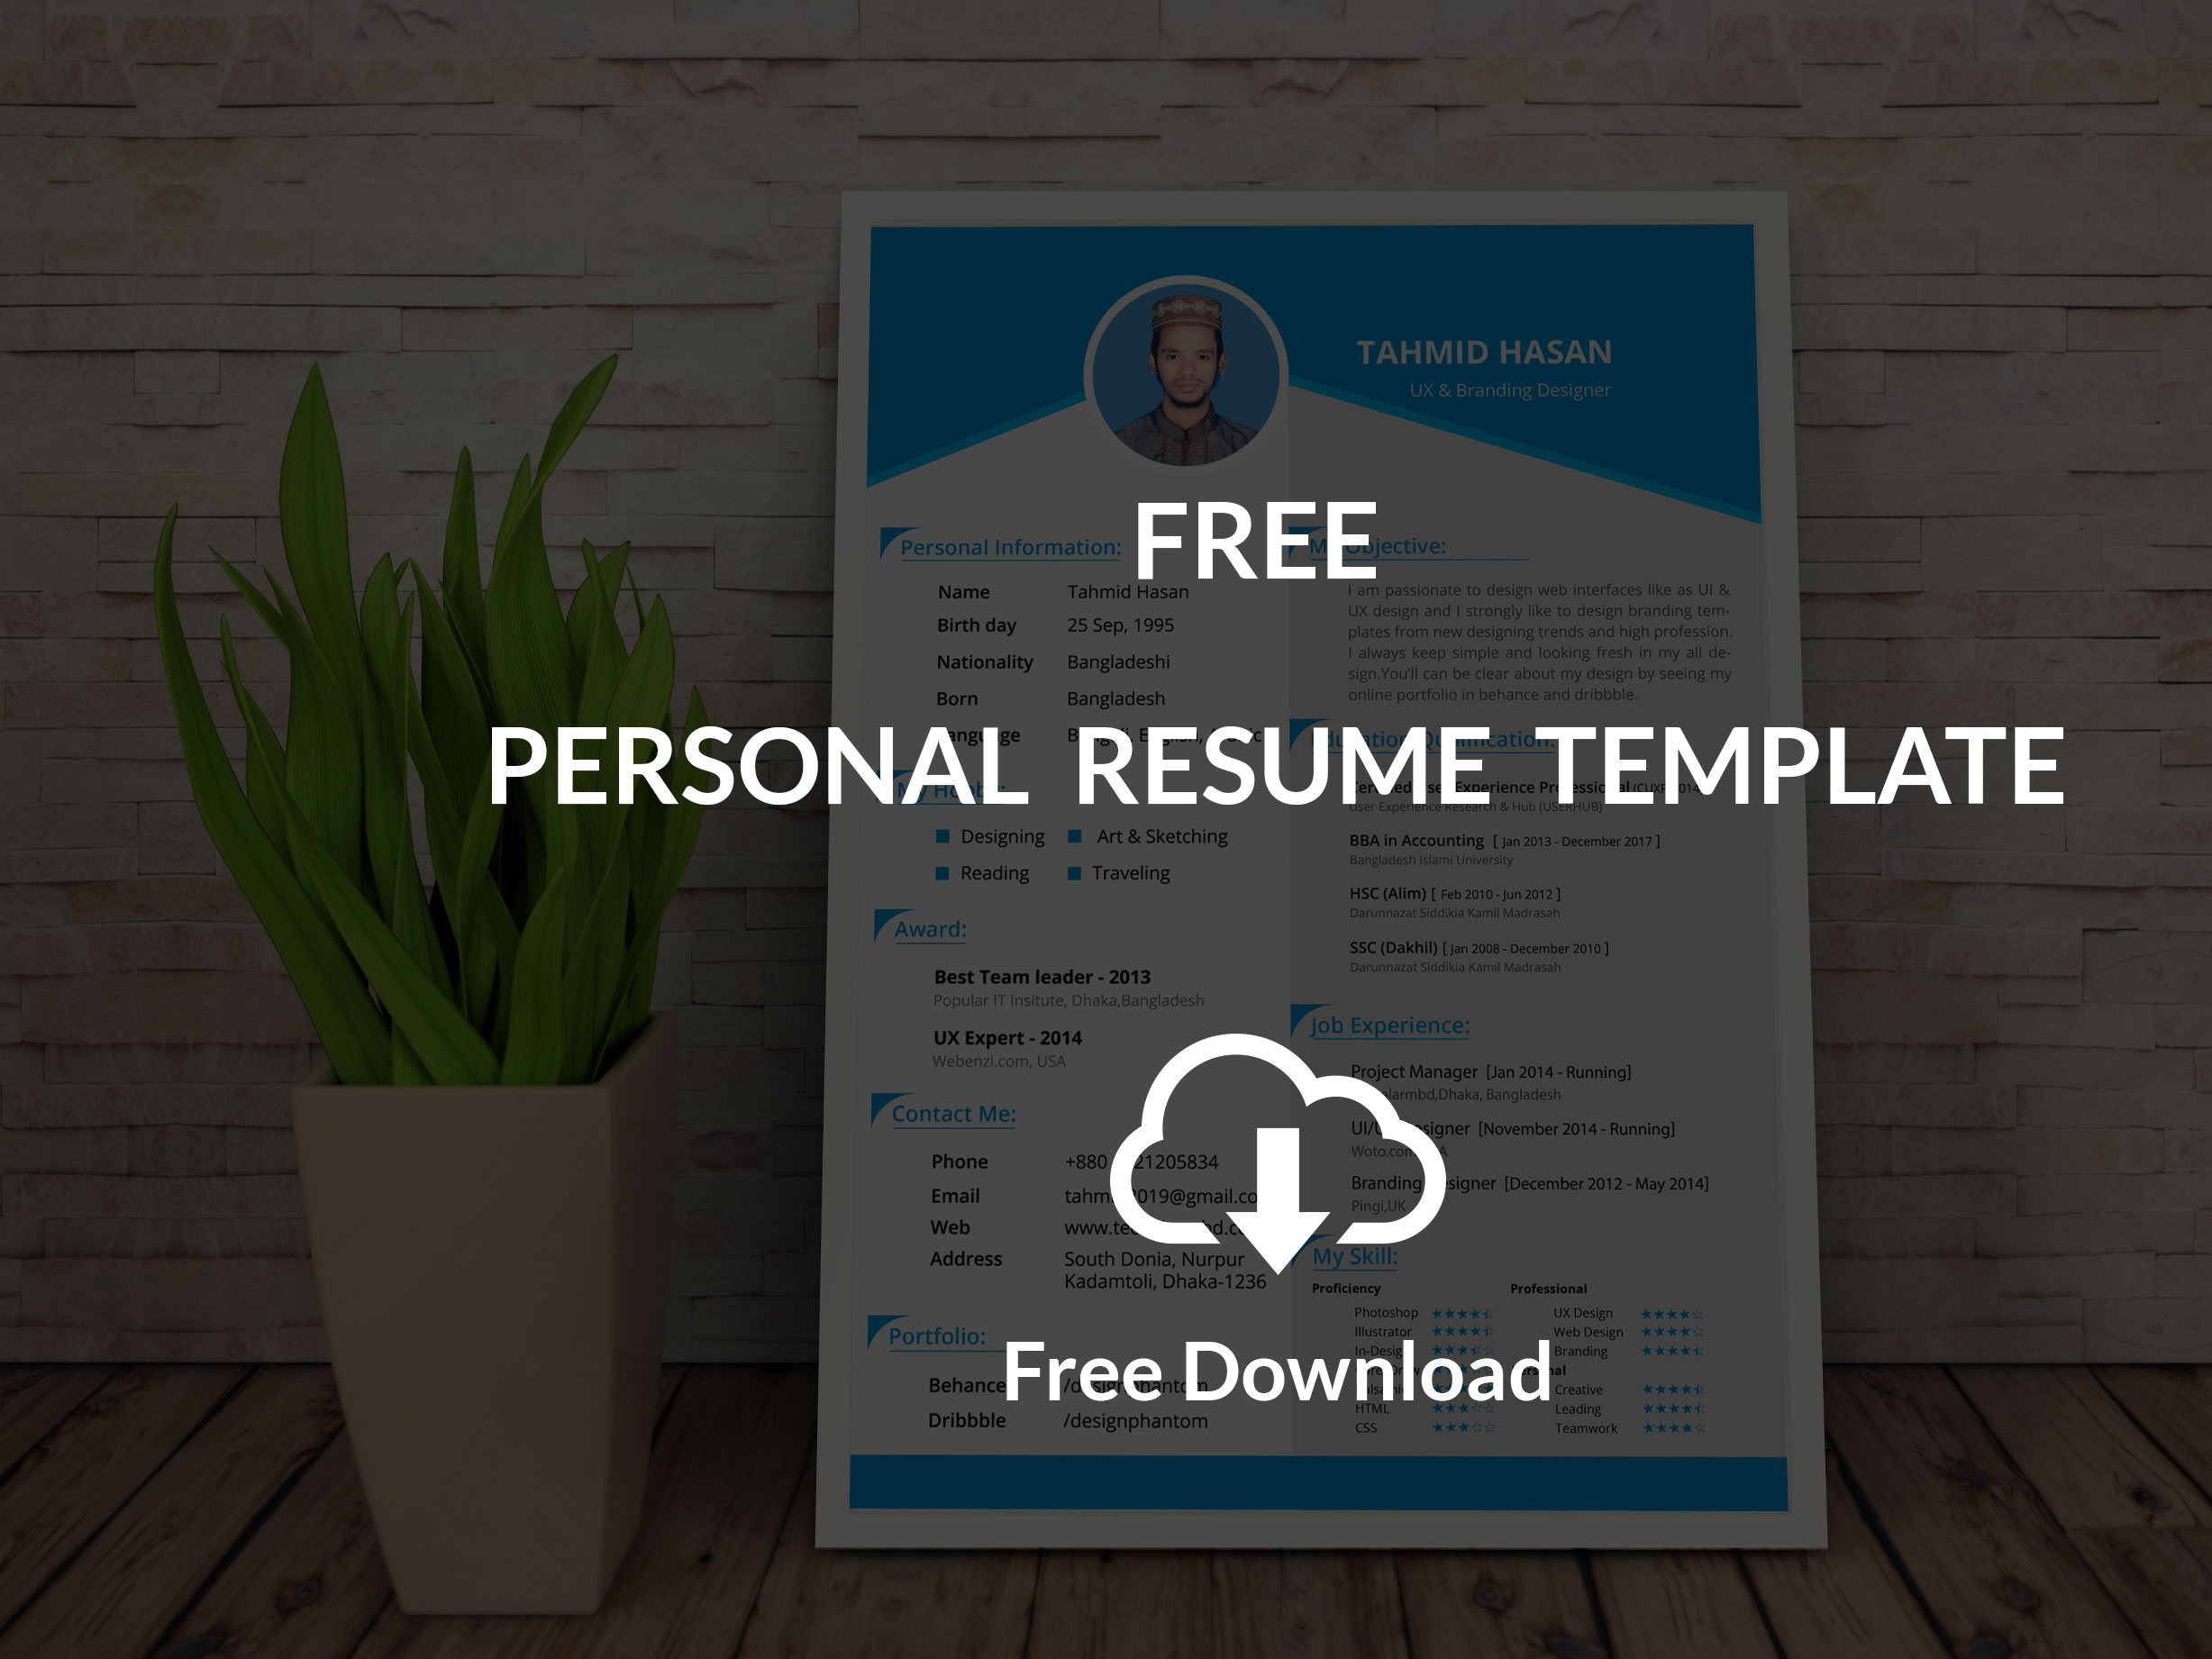 Personal Resume Template (Free Download)